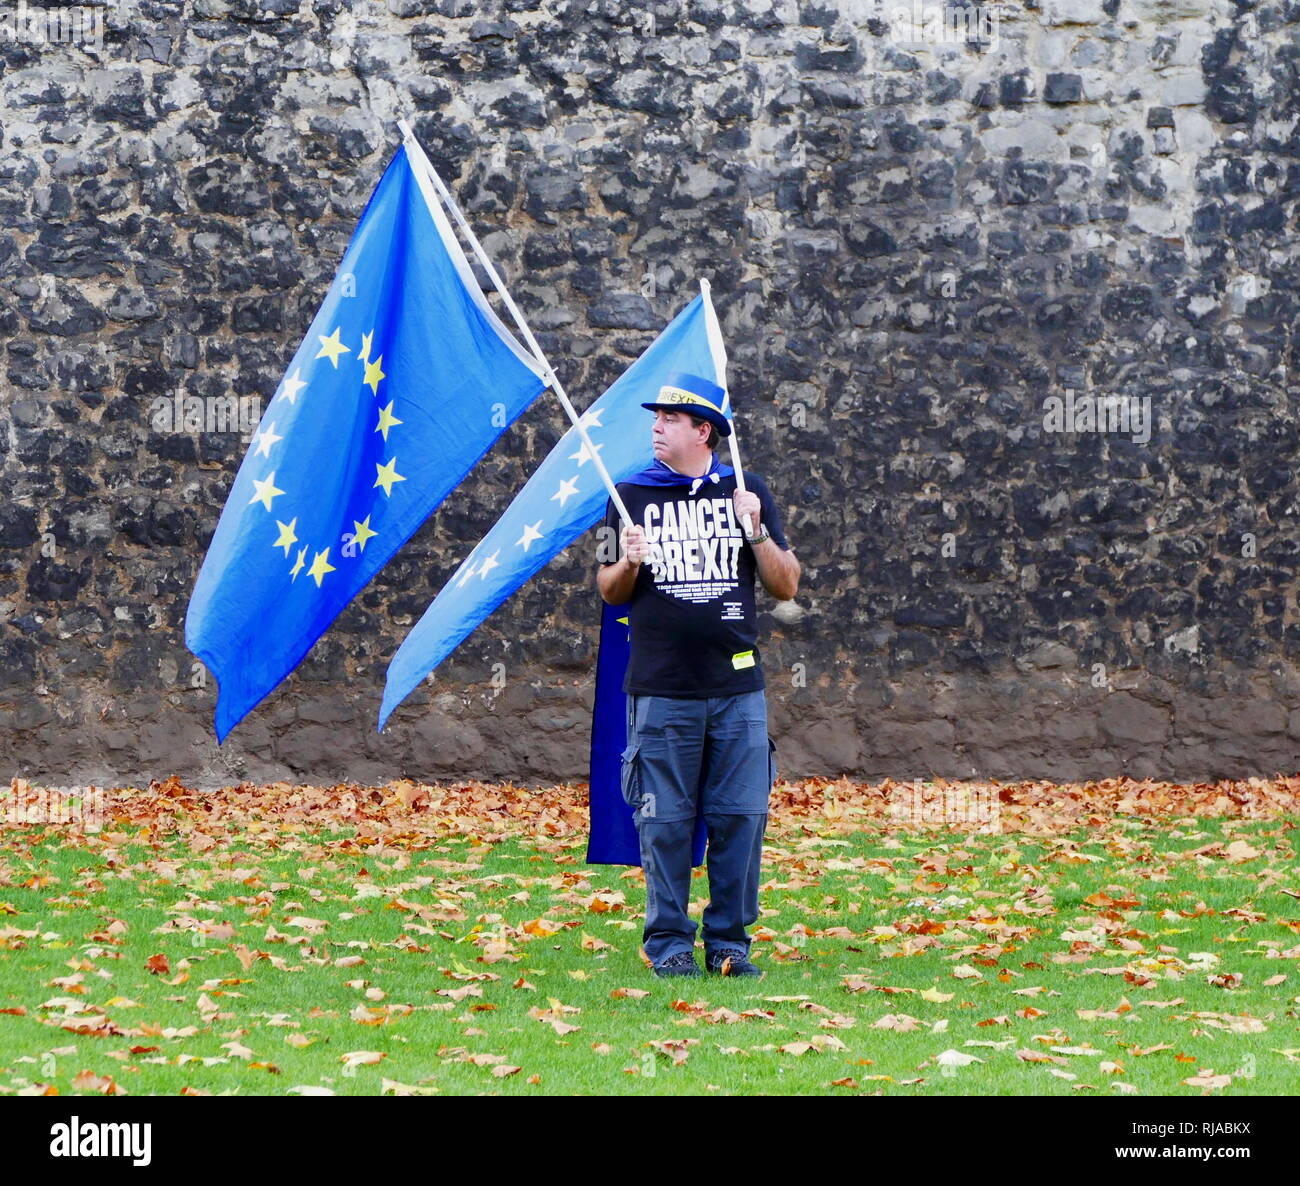 Solitary protester carrying European Union flags opposite the British Parliament, protests against the Brexit vote after the 2016 Referendum in which the United Kingdom voted to leave the EU. Stock Photo